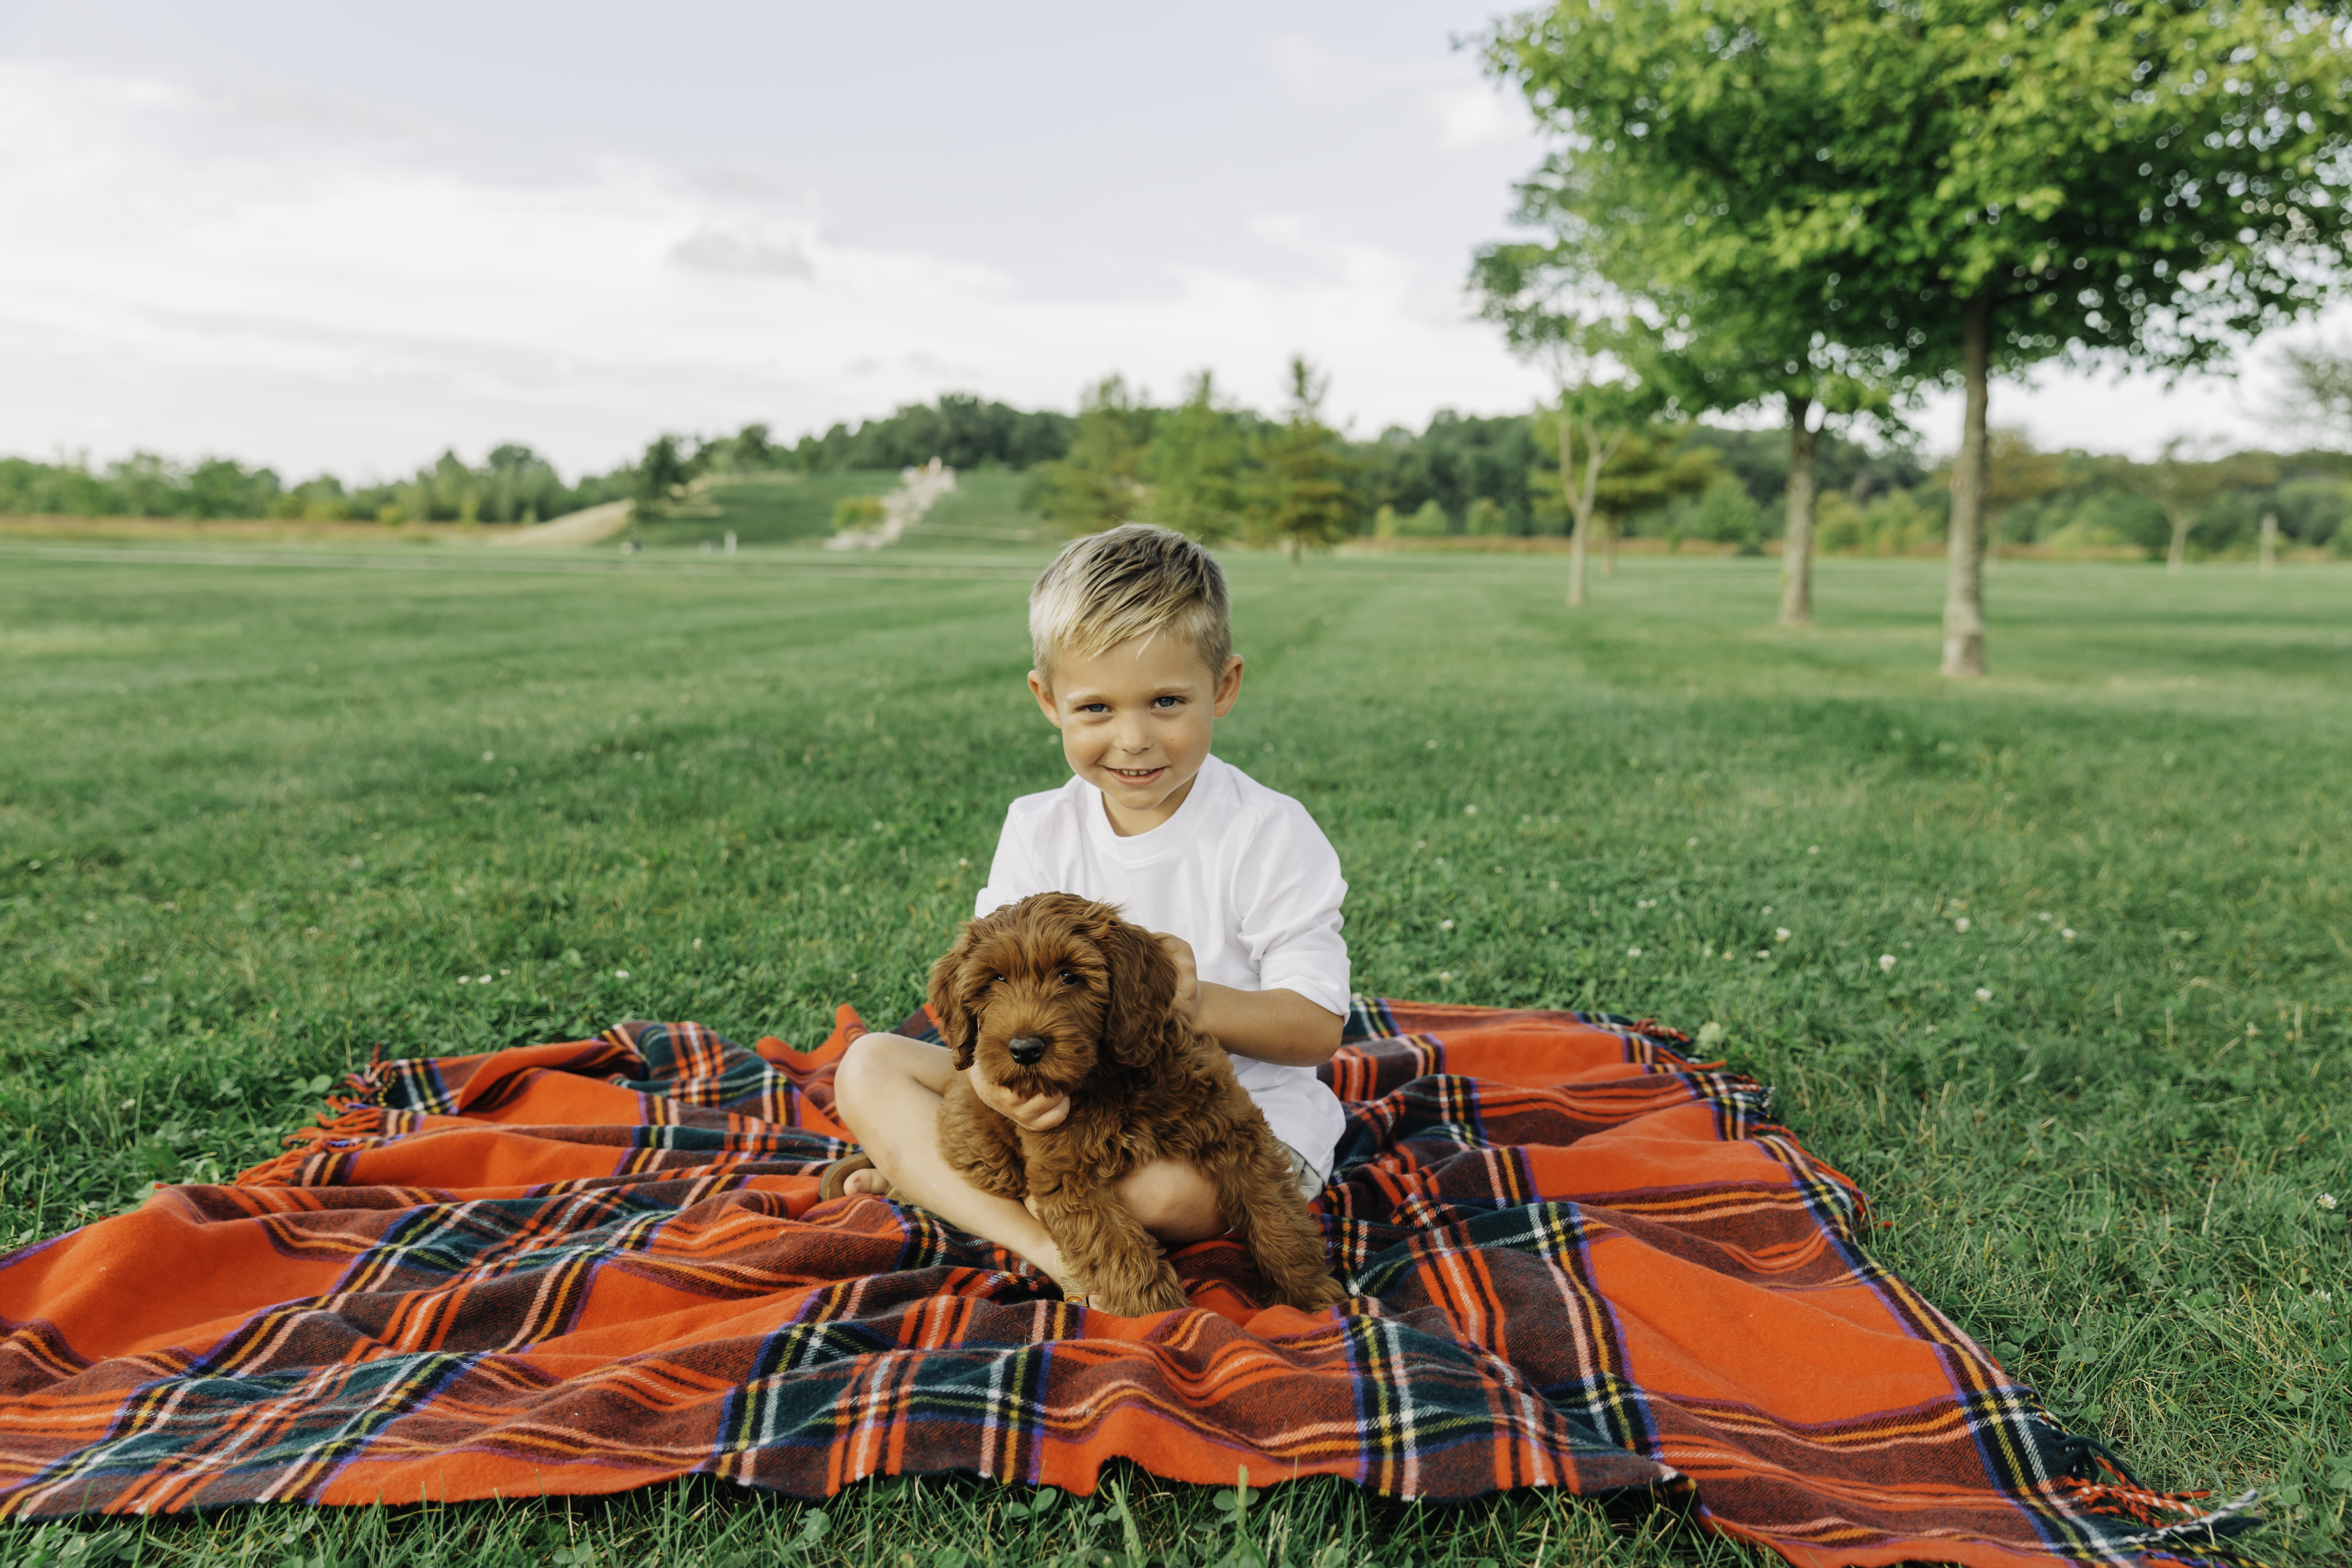 Boy + pup, summer